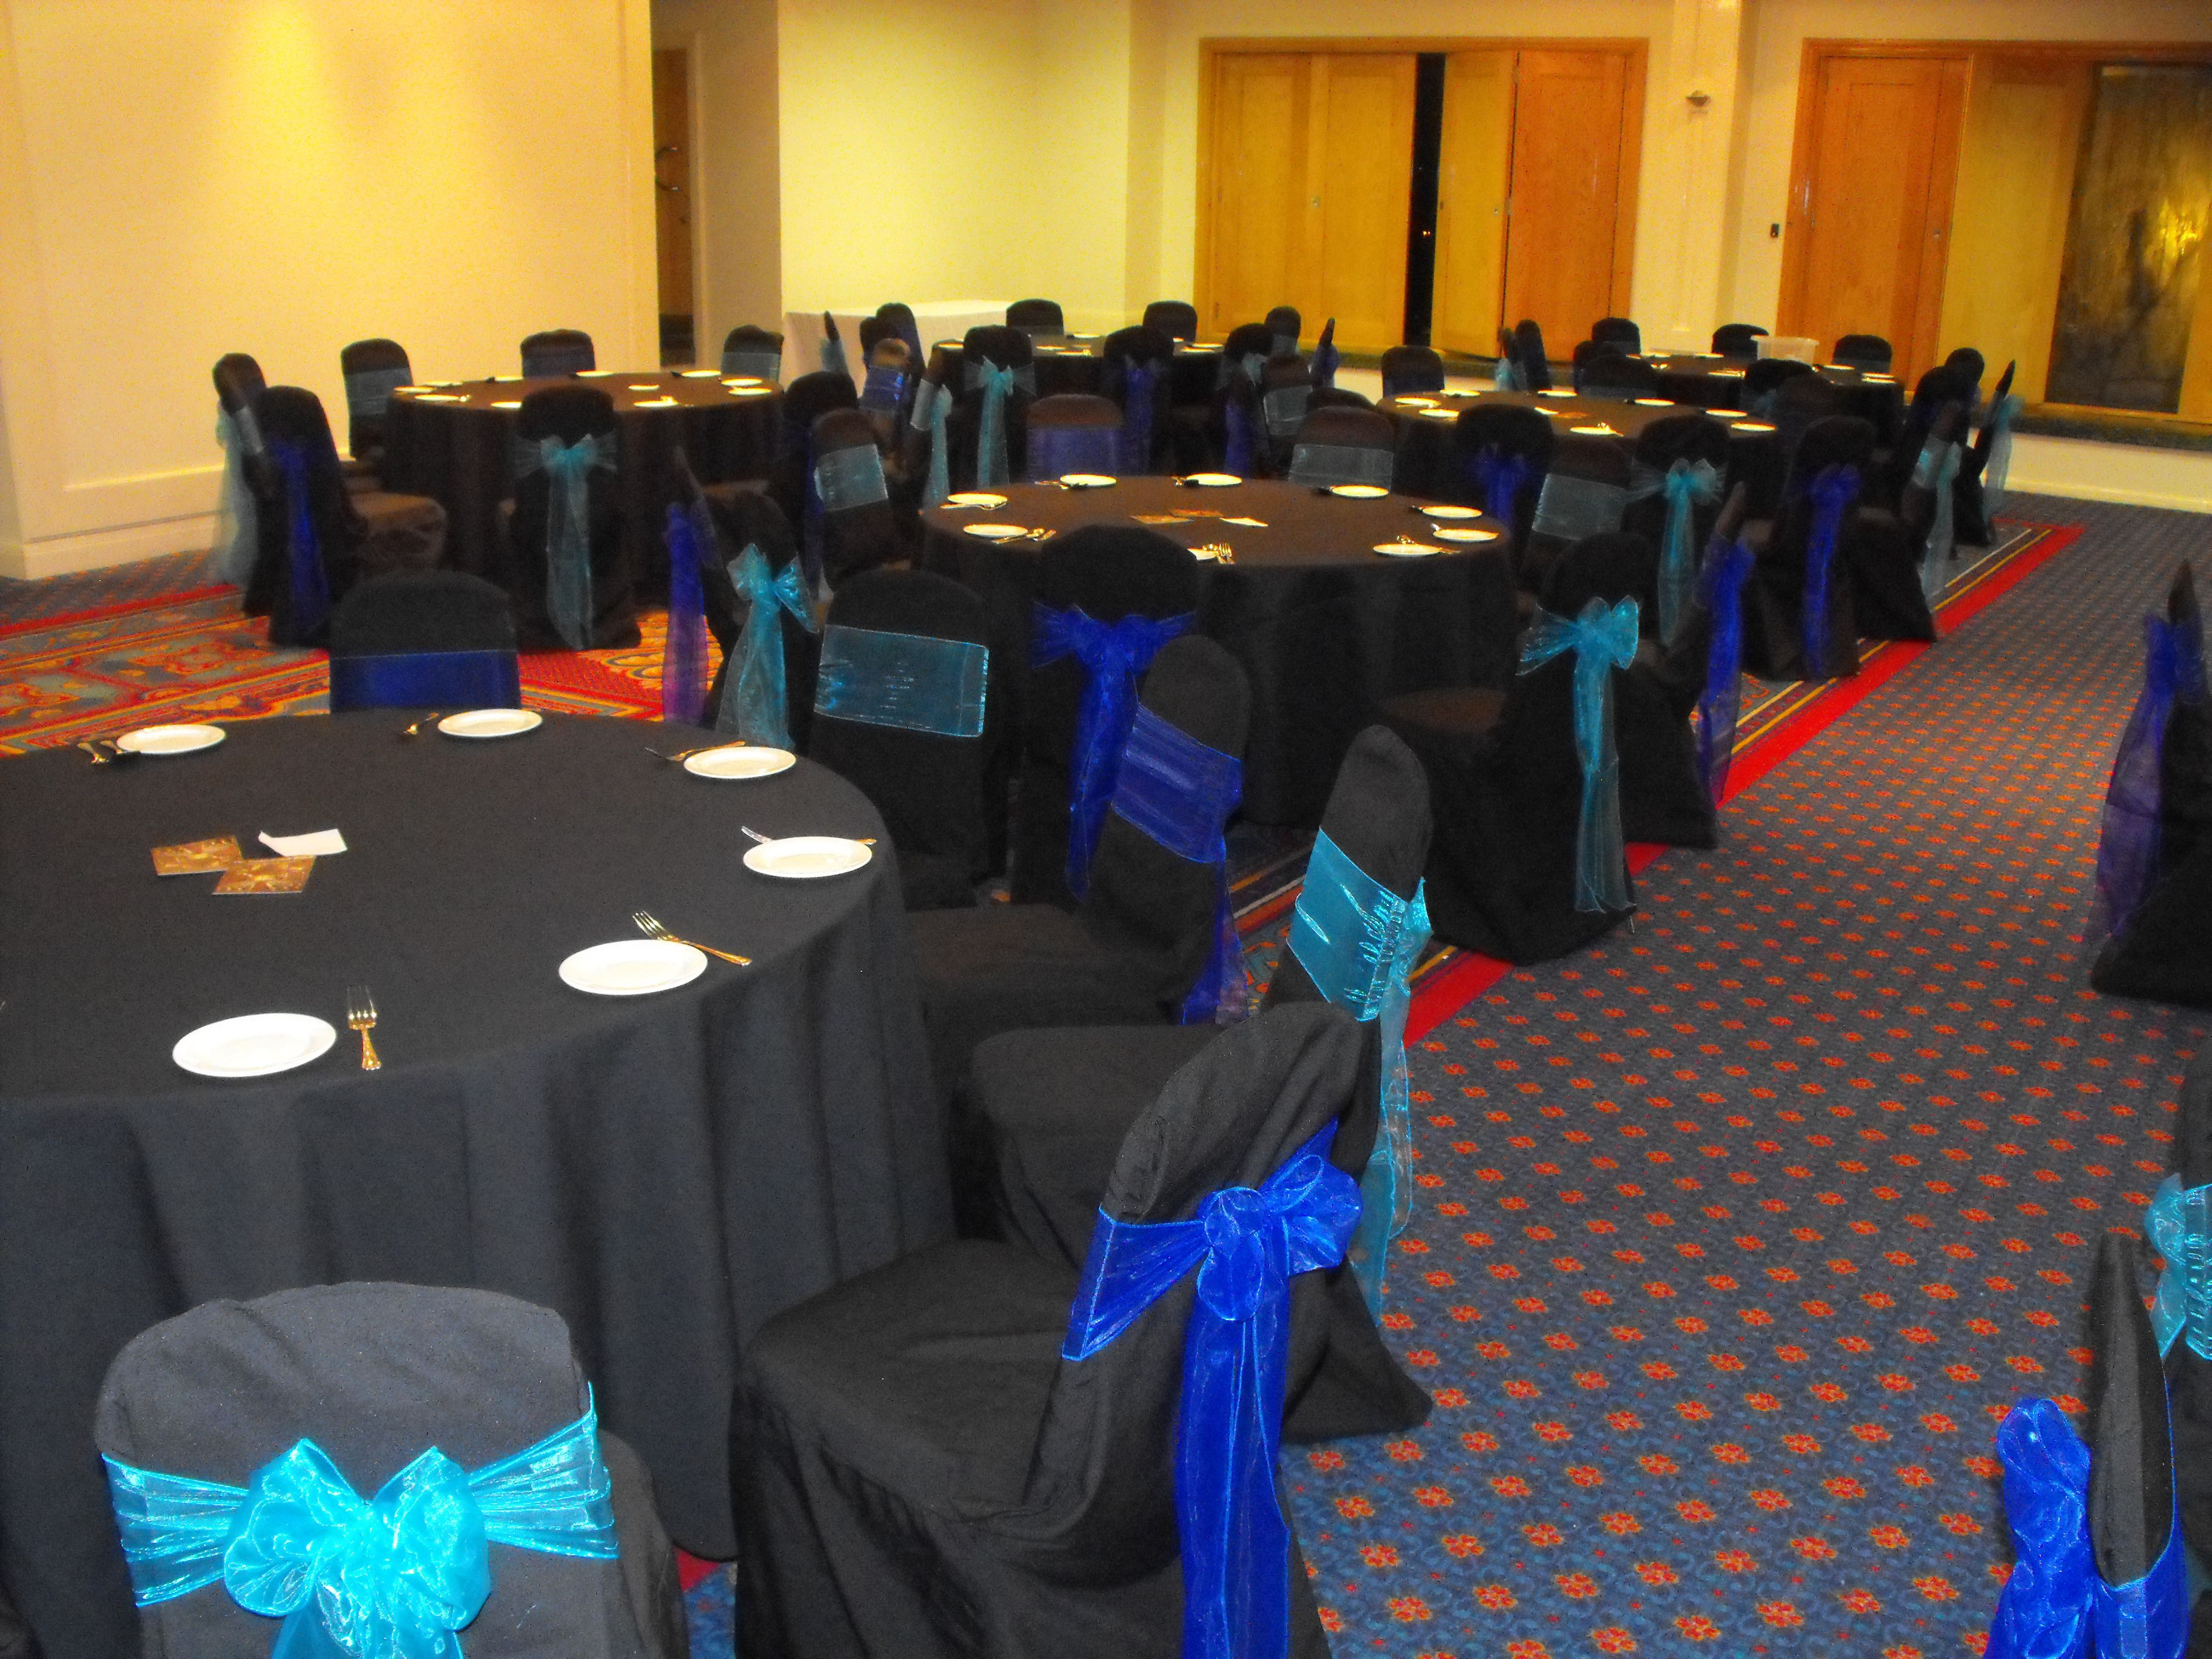 Alternating Turquoise and Royal Blue Organza Bows on Black Chair